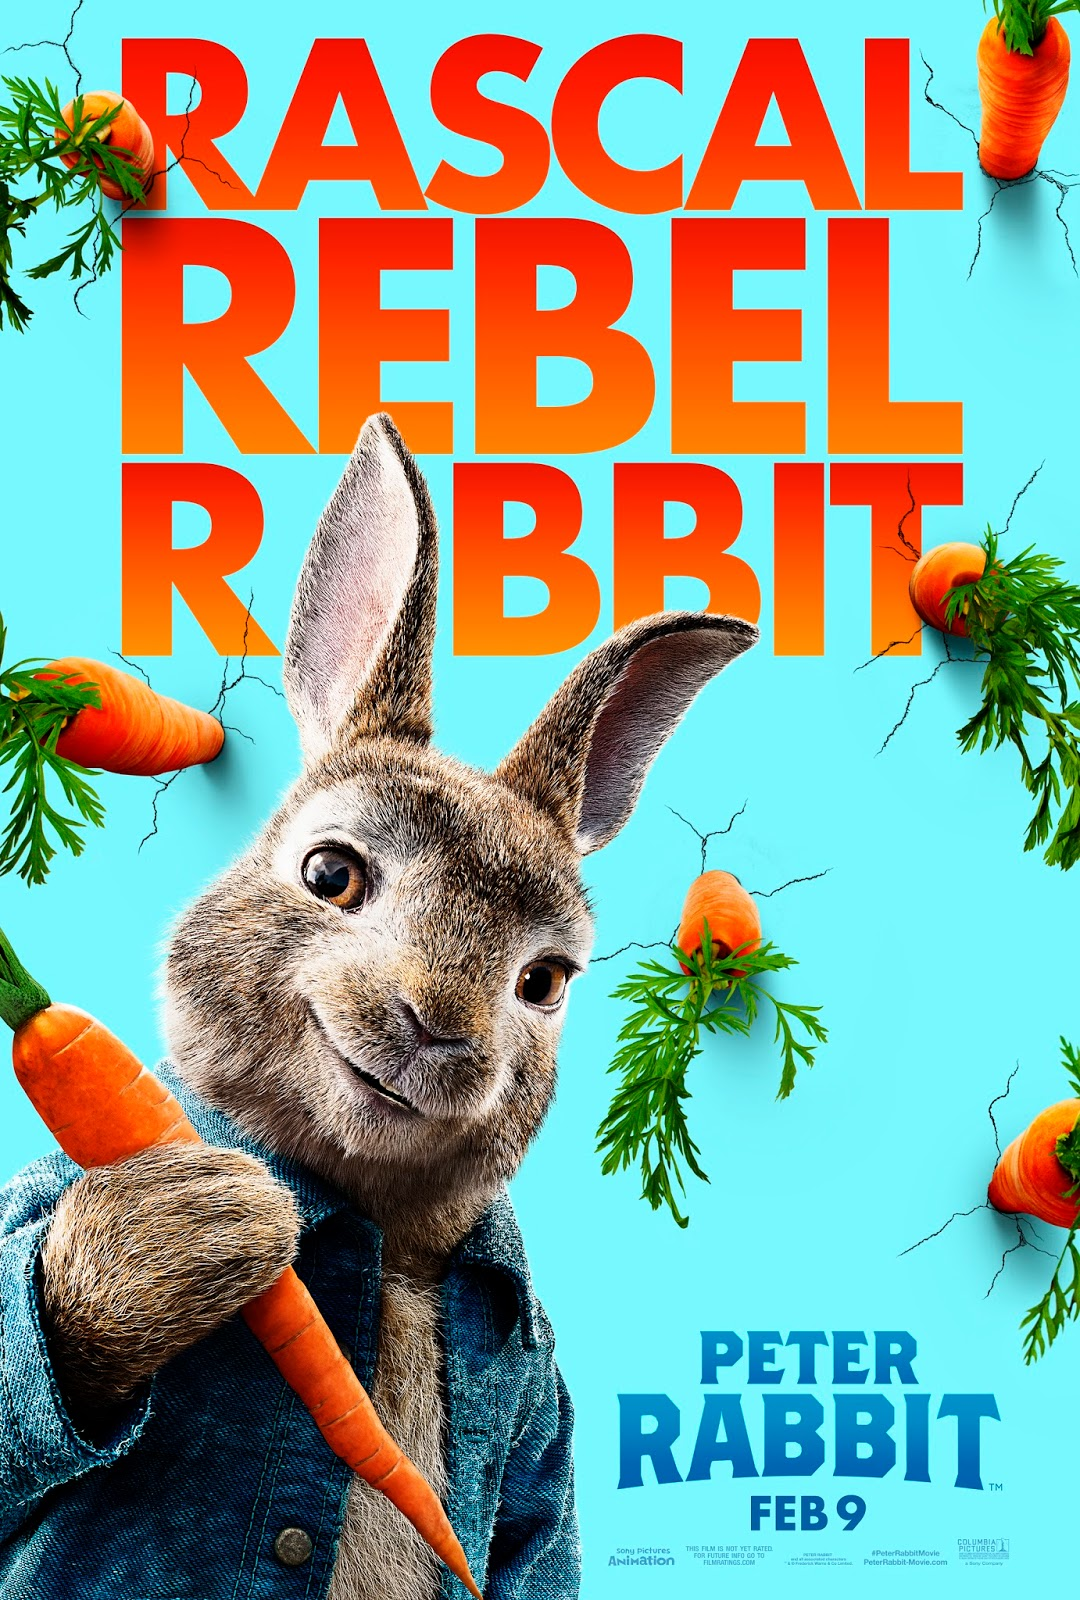 Sony's PETER RABBIT Character Appearance in Atlanta!  via  www.productreviewmom.com